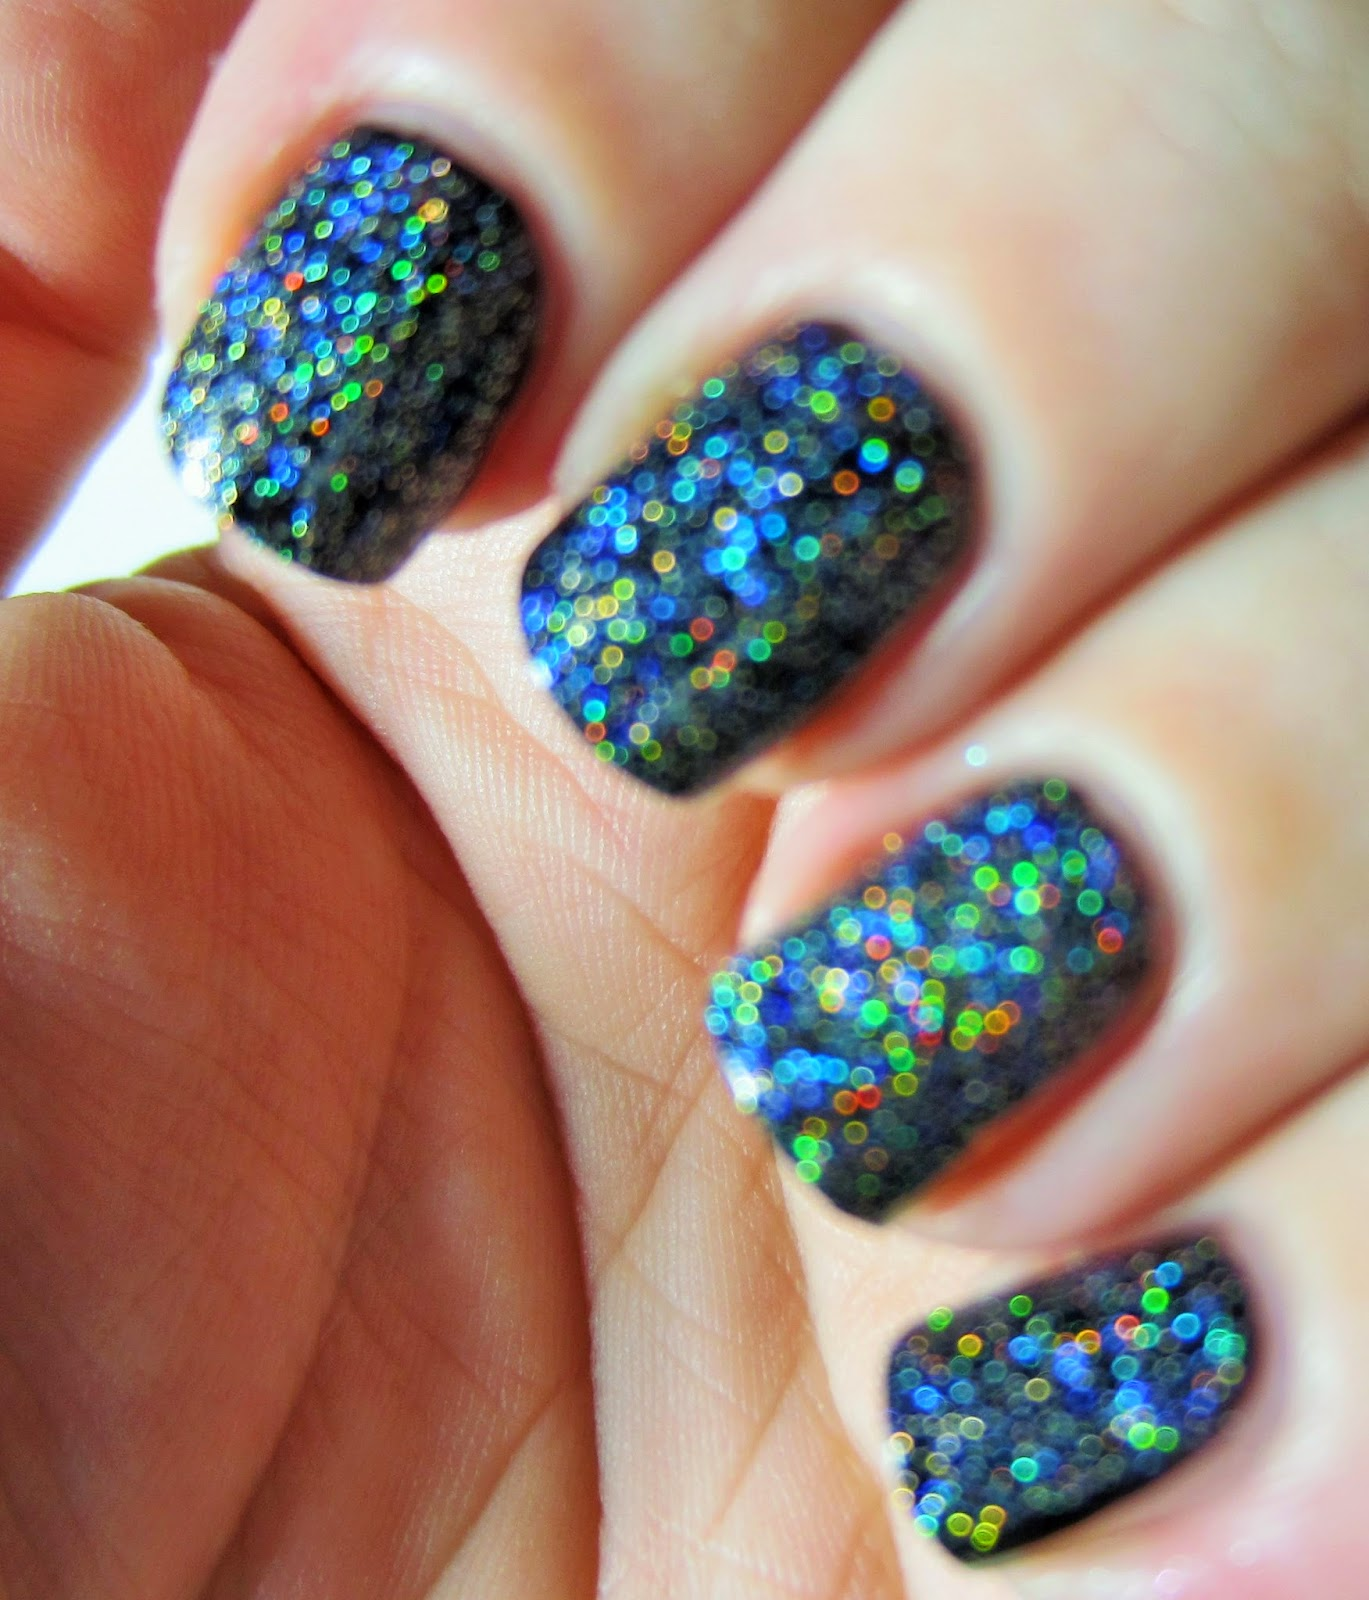 Polished with Pizzazz: Revlon Transforming Effects Top Coats